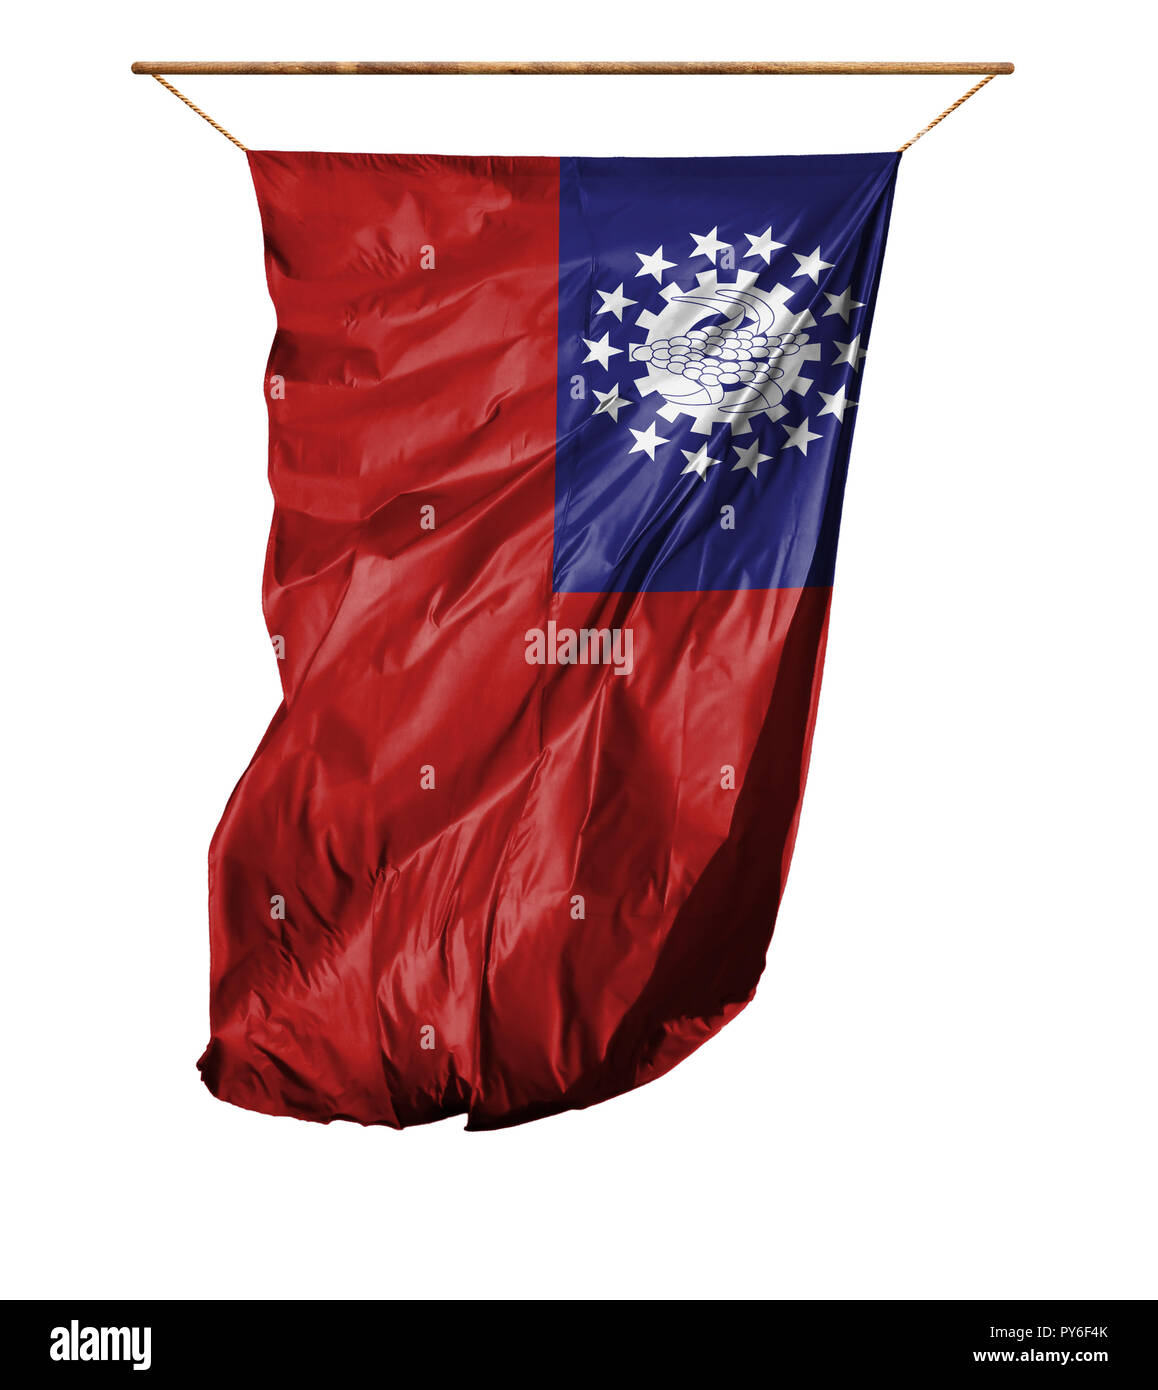 Flag of Myanmar-Burma. Vertical flag.Isolated on a white background. - Stock Image